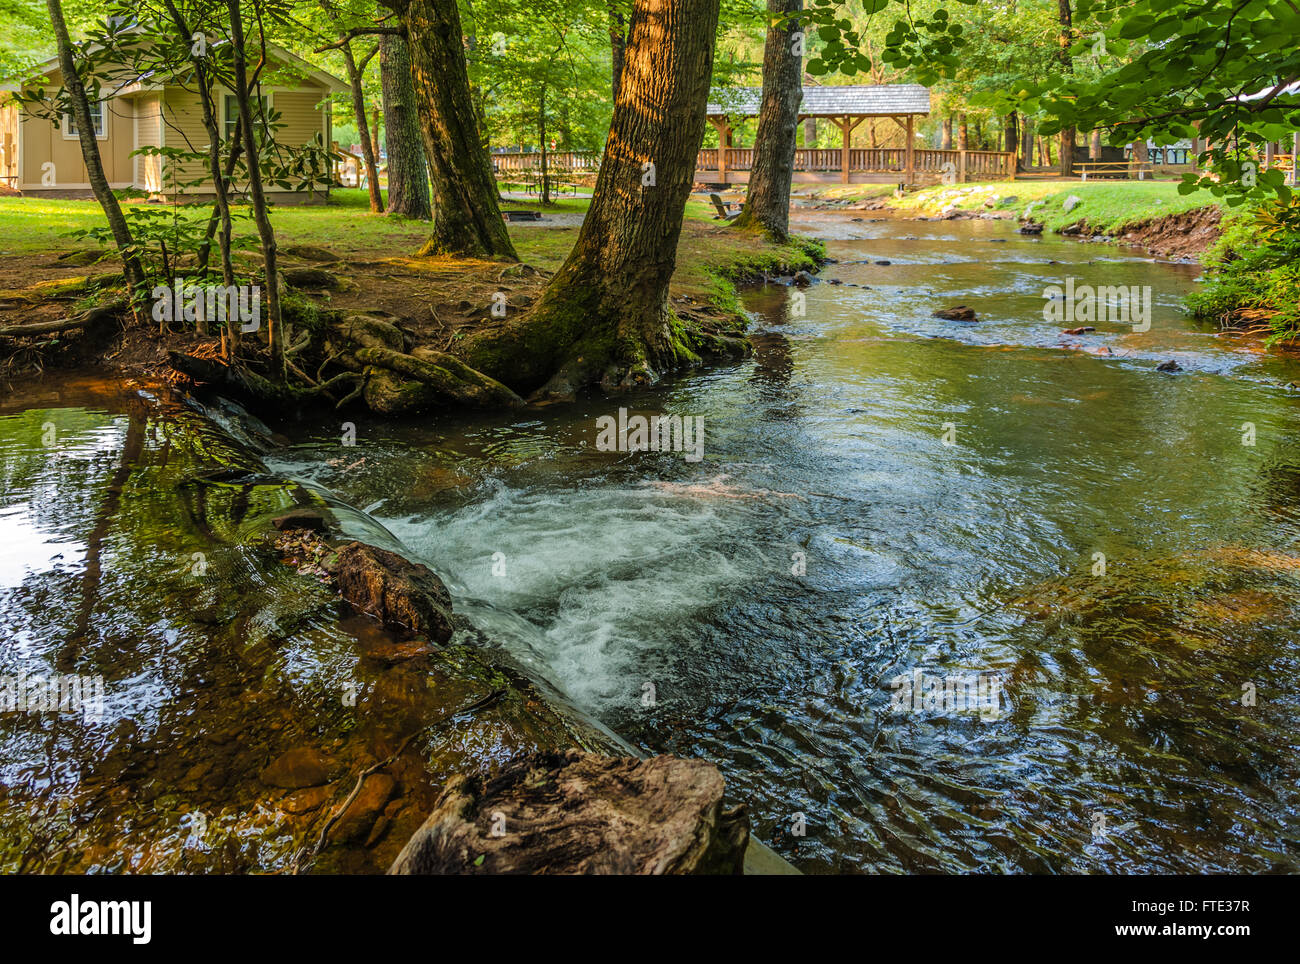 Cabin, footbridge and flowing stream at beautiful Vogel State Park in the North Georgia Mountains. USA. - Stock Image